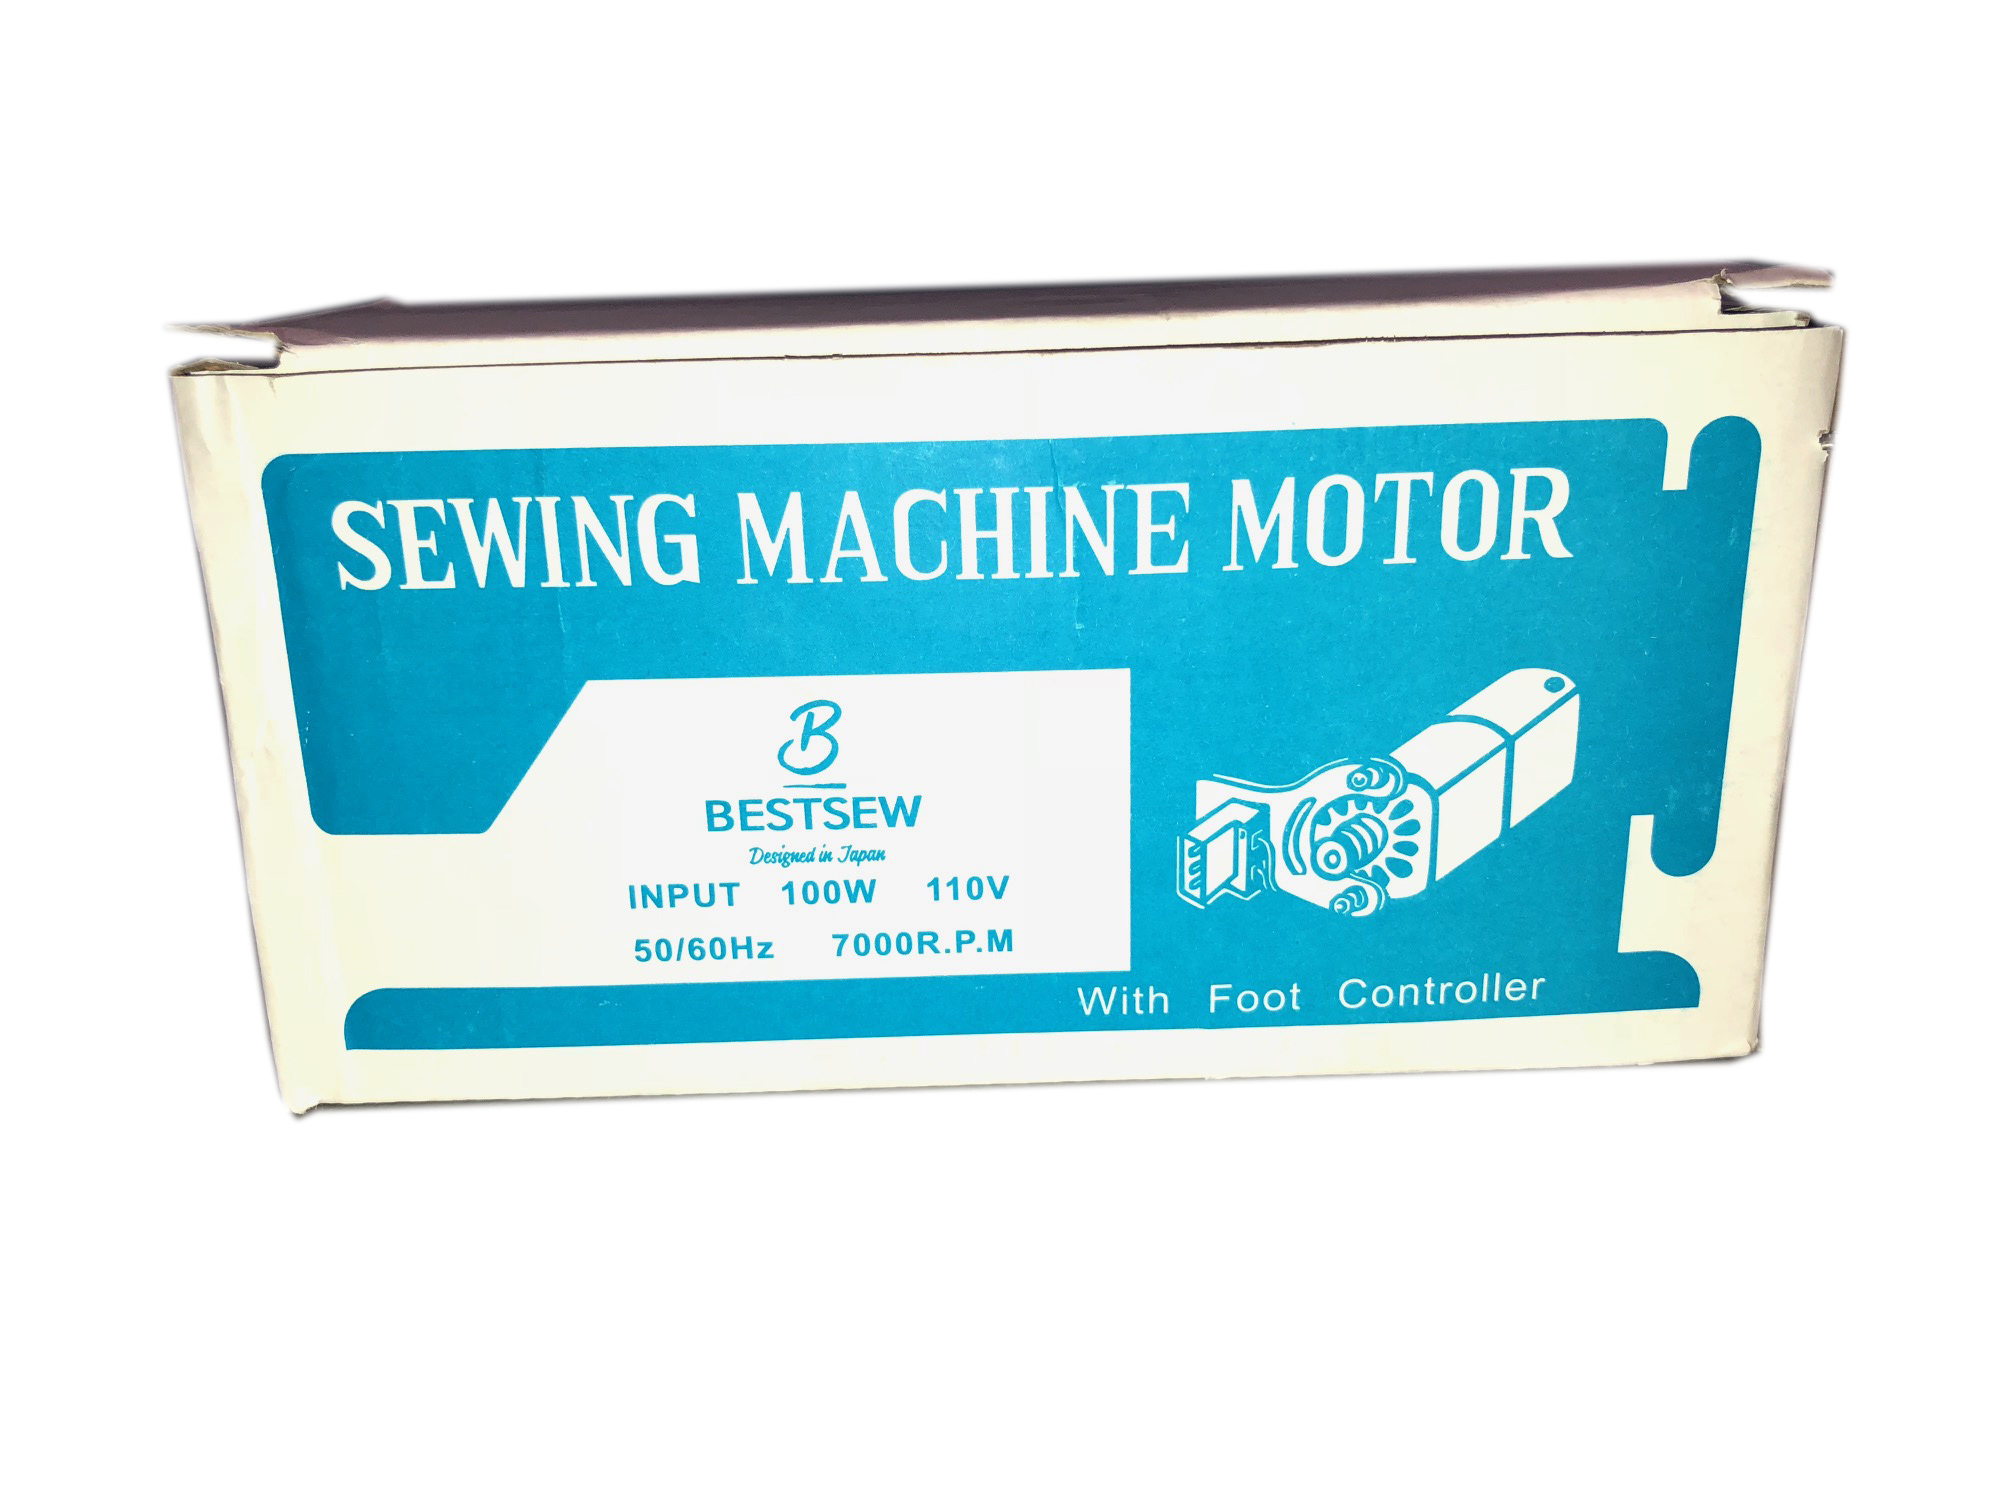 Domestic HOME SEWING MACHINE MOTOR /& PEDAL SINGER HA1 15 66 99K